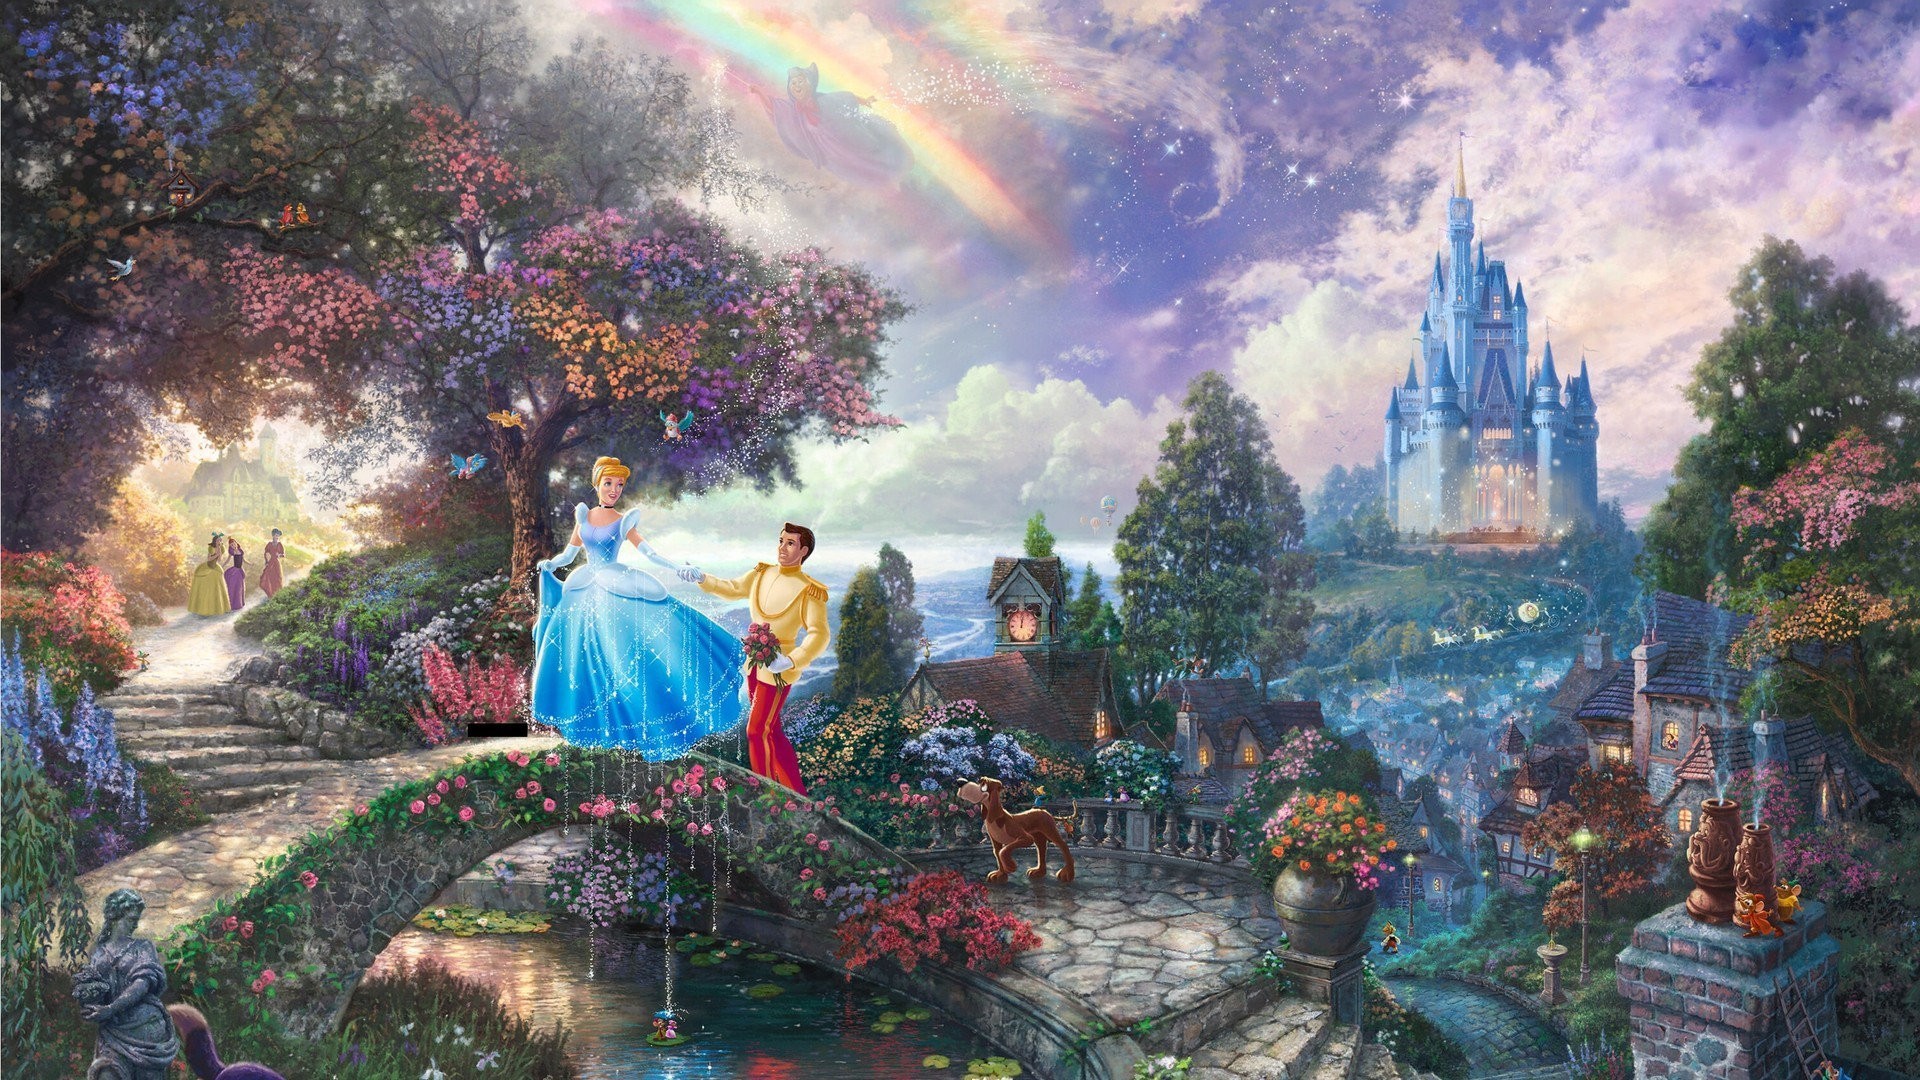 Cinderella full hd wallpaper and background image 1920x1080 id movie cinderella 1950 cinderella wallpaper altavistaventures Images